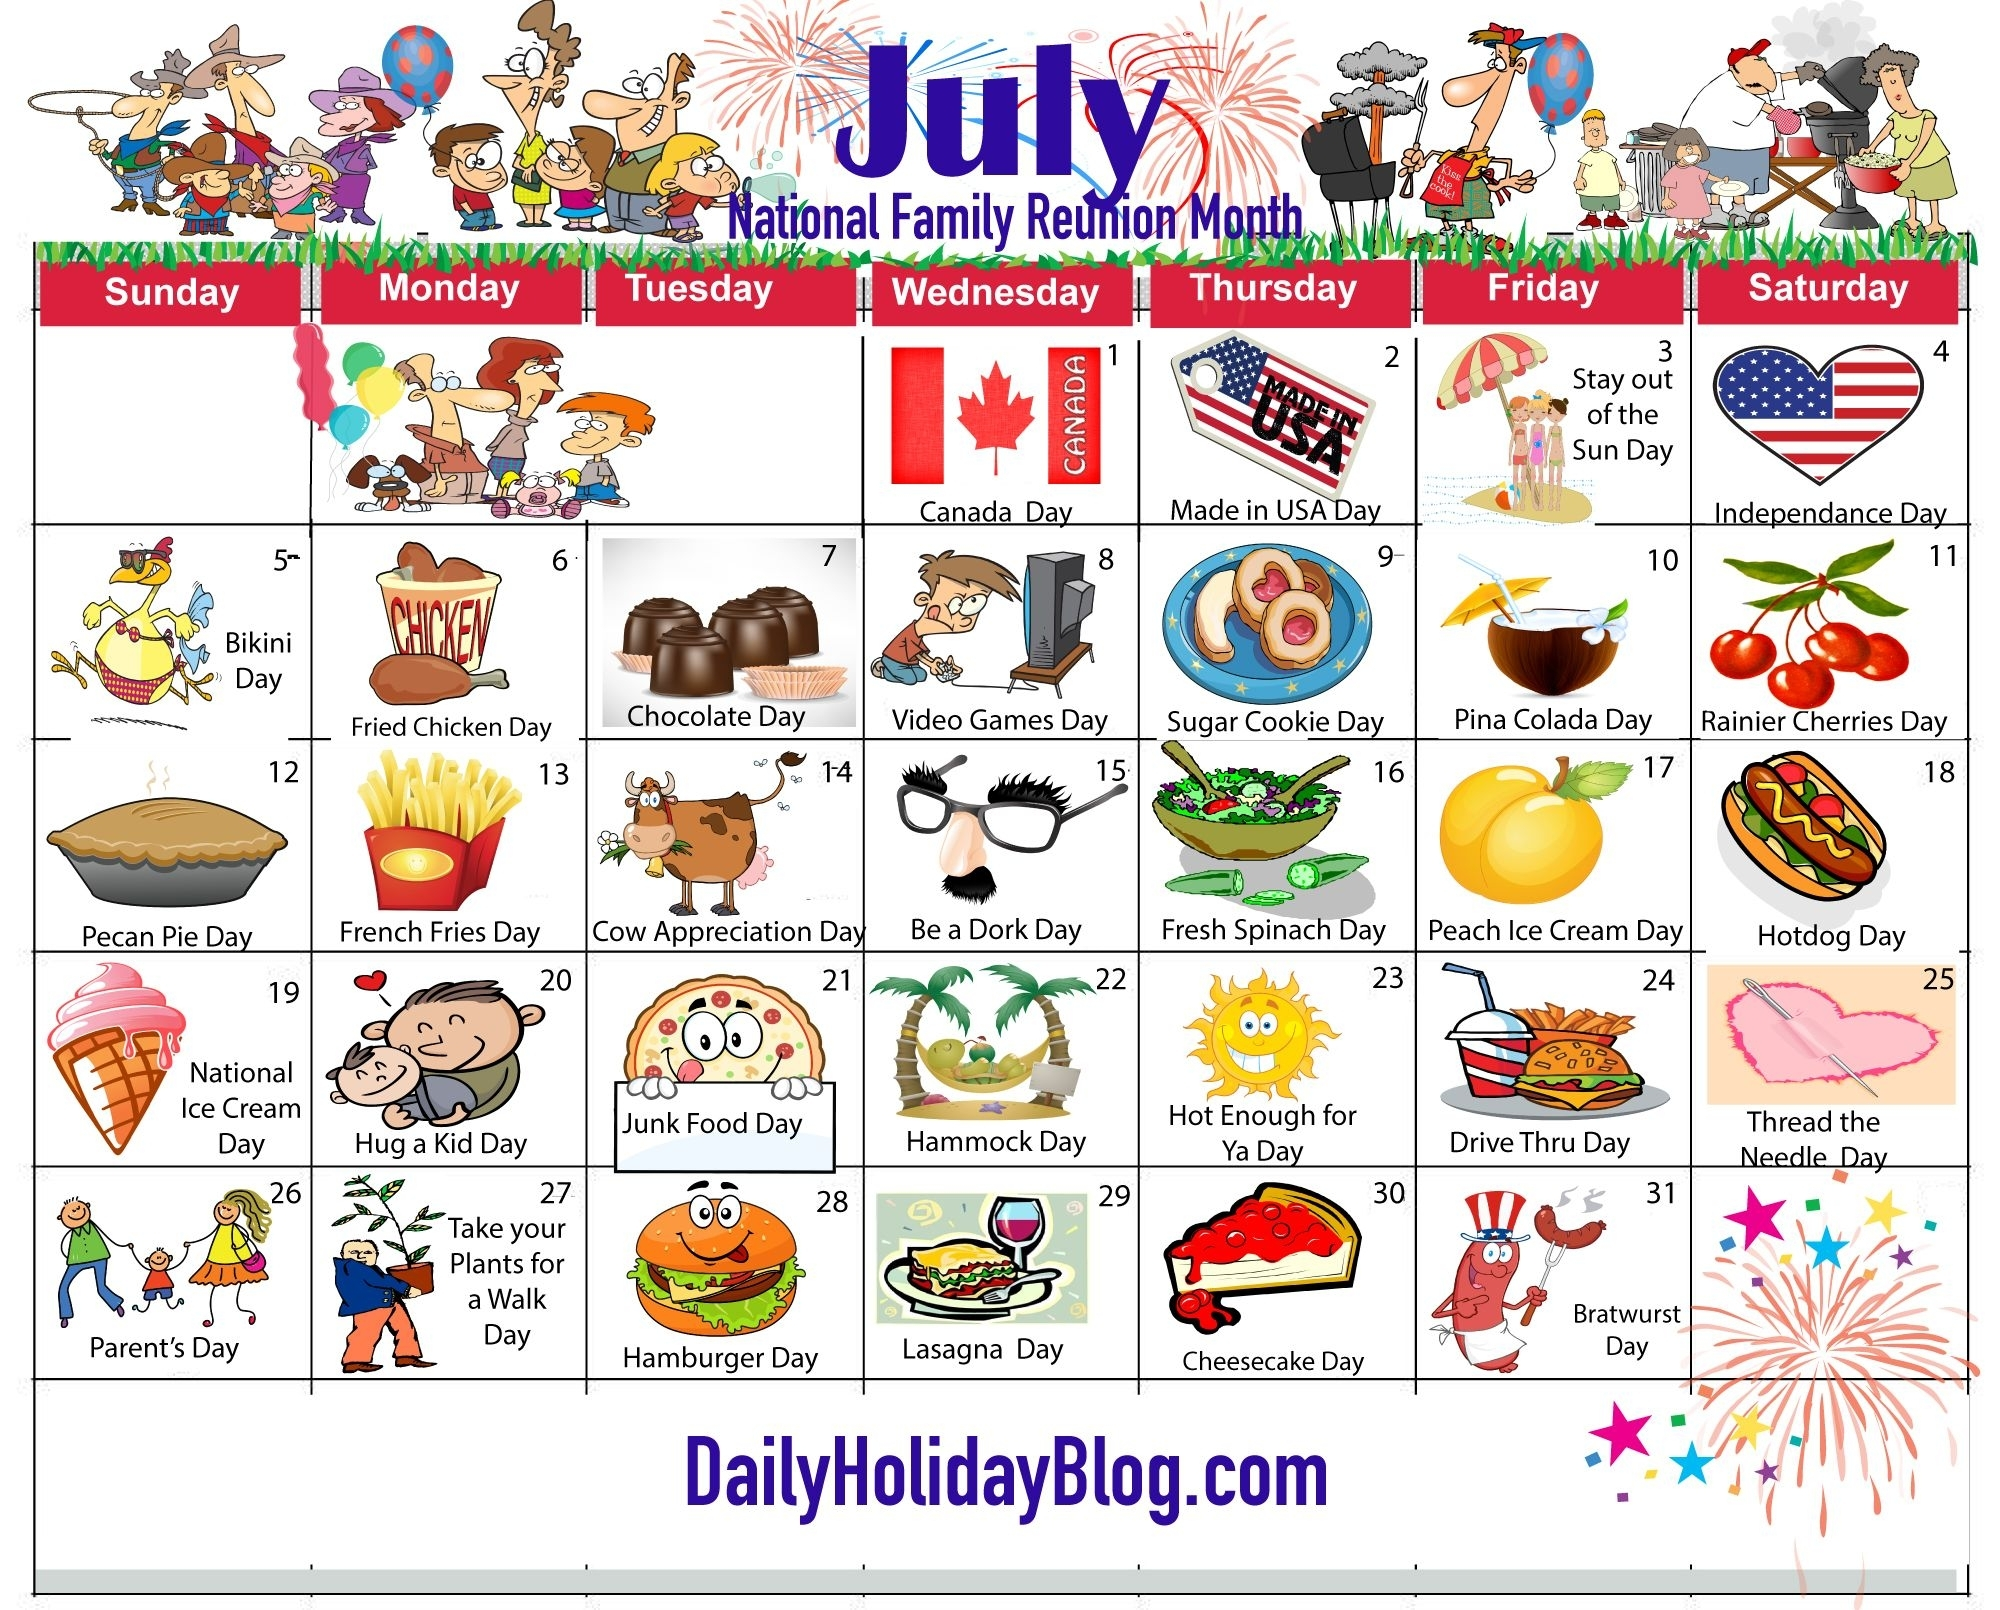 July Holiday Calendar 2015 | My Life Planner | National Holiday intended for July National Food Day Calendar